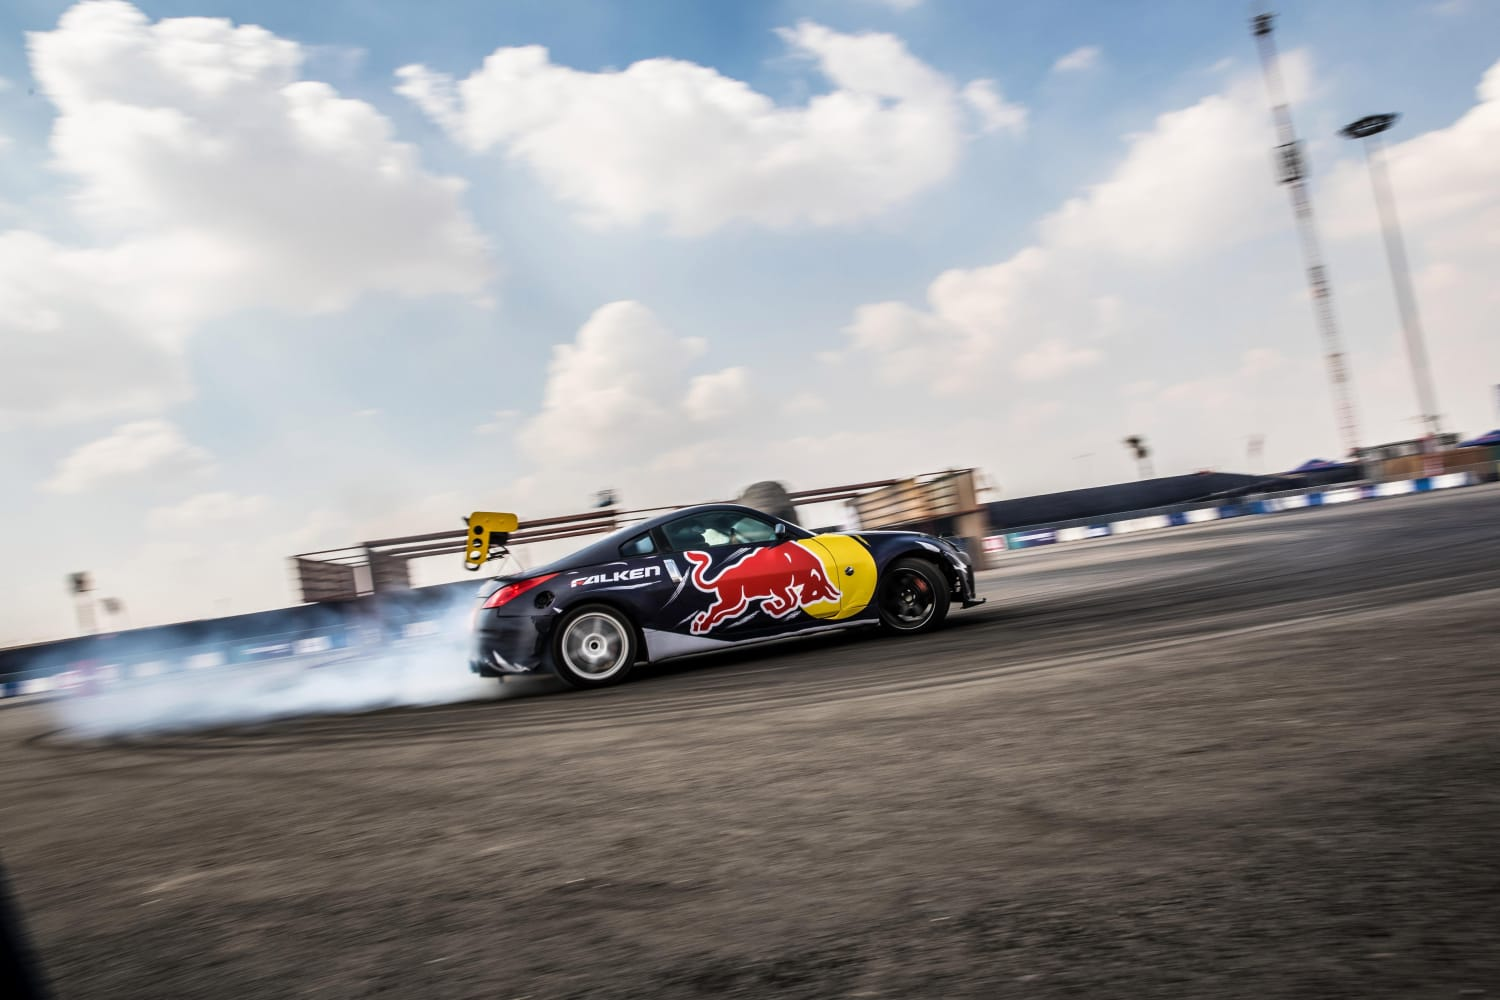 Red Bull Car Park Drift Dubai 2020